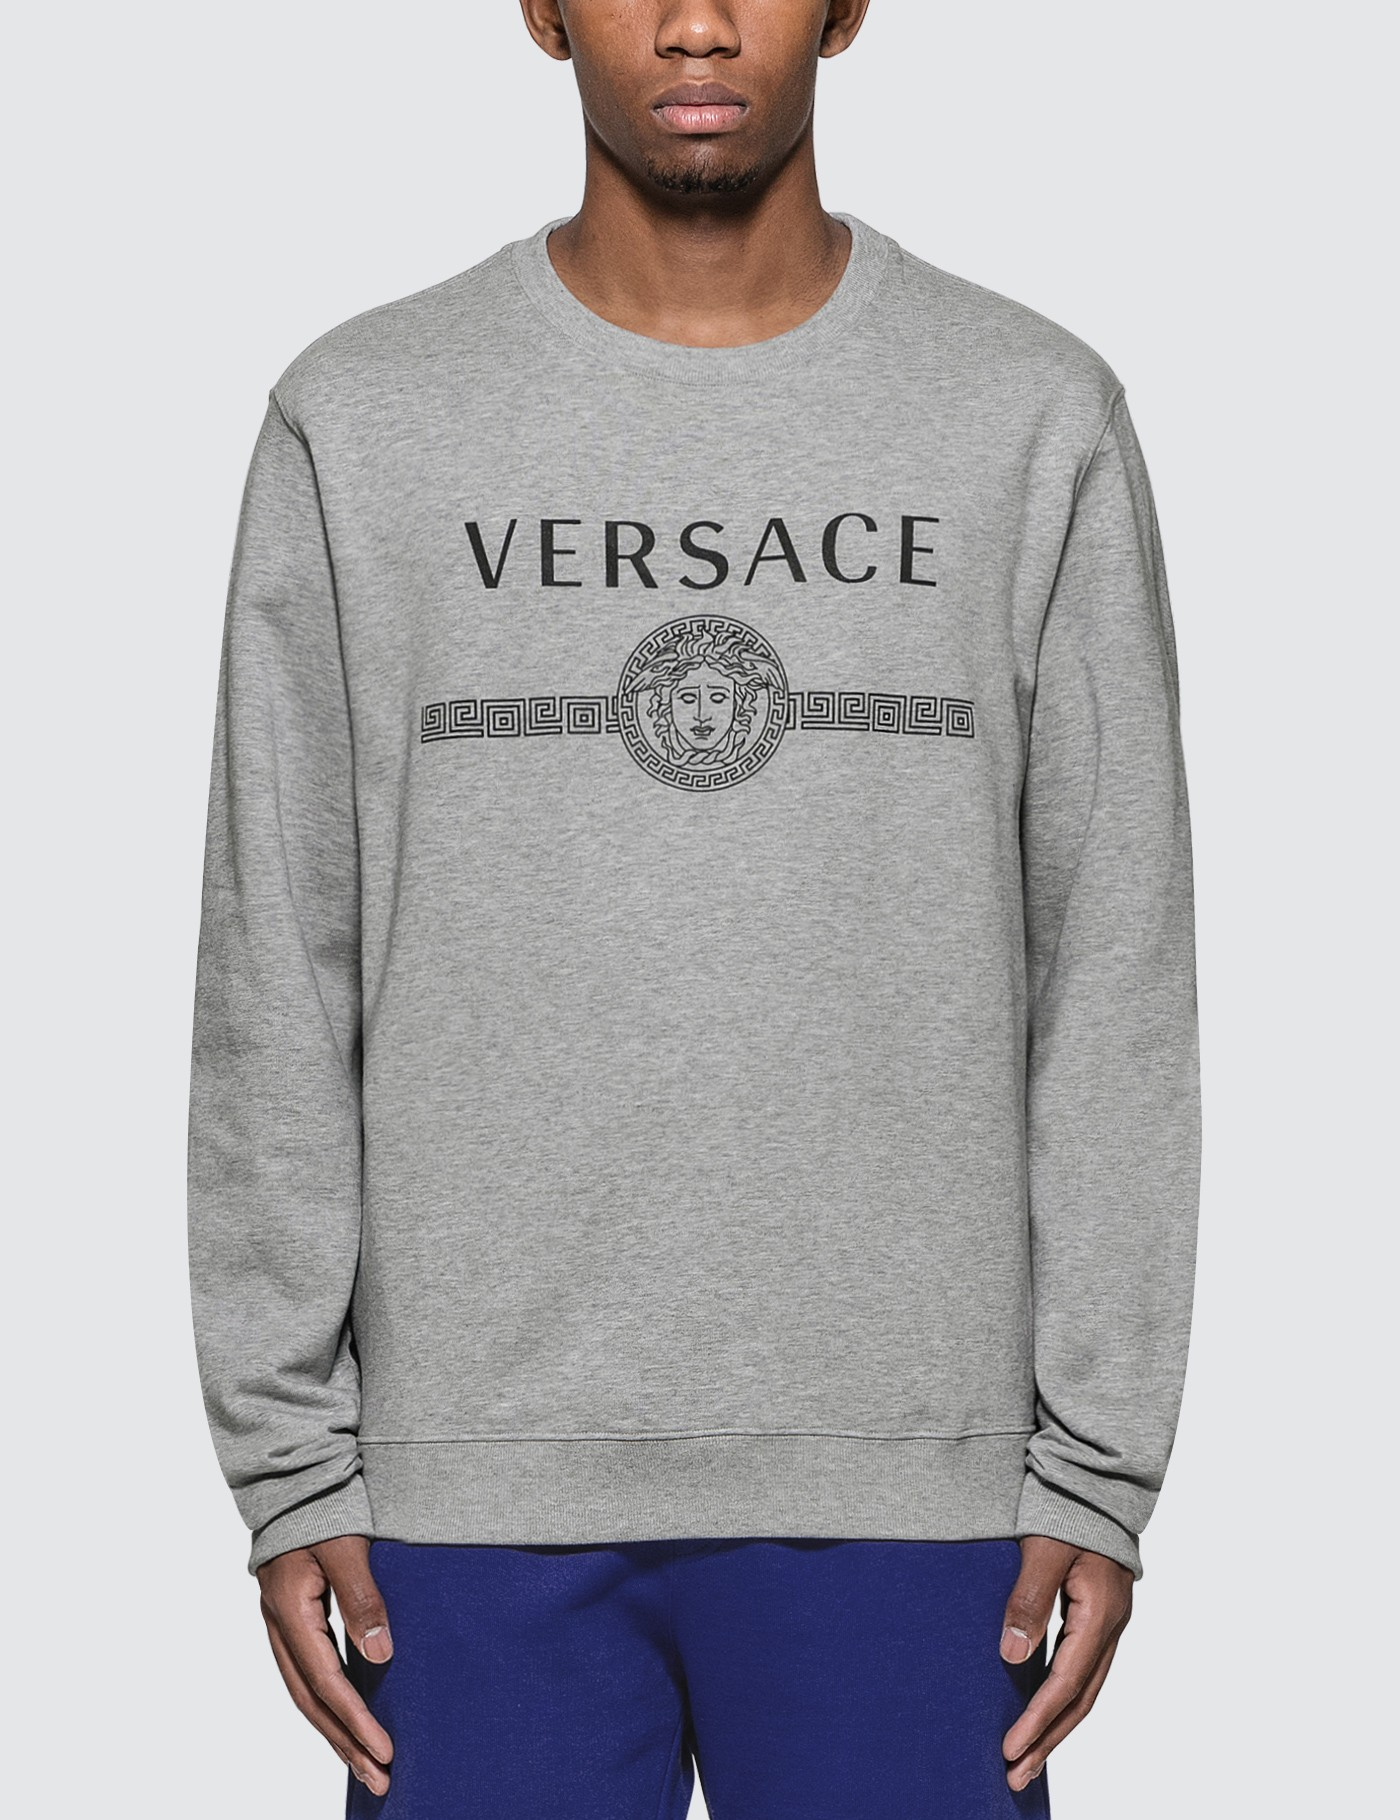 3dee9452 Buy Original Versace Font S/S T-Shirt at Indonesia | BOBOBOBO